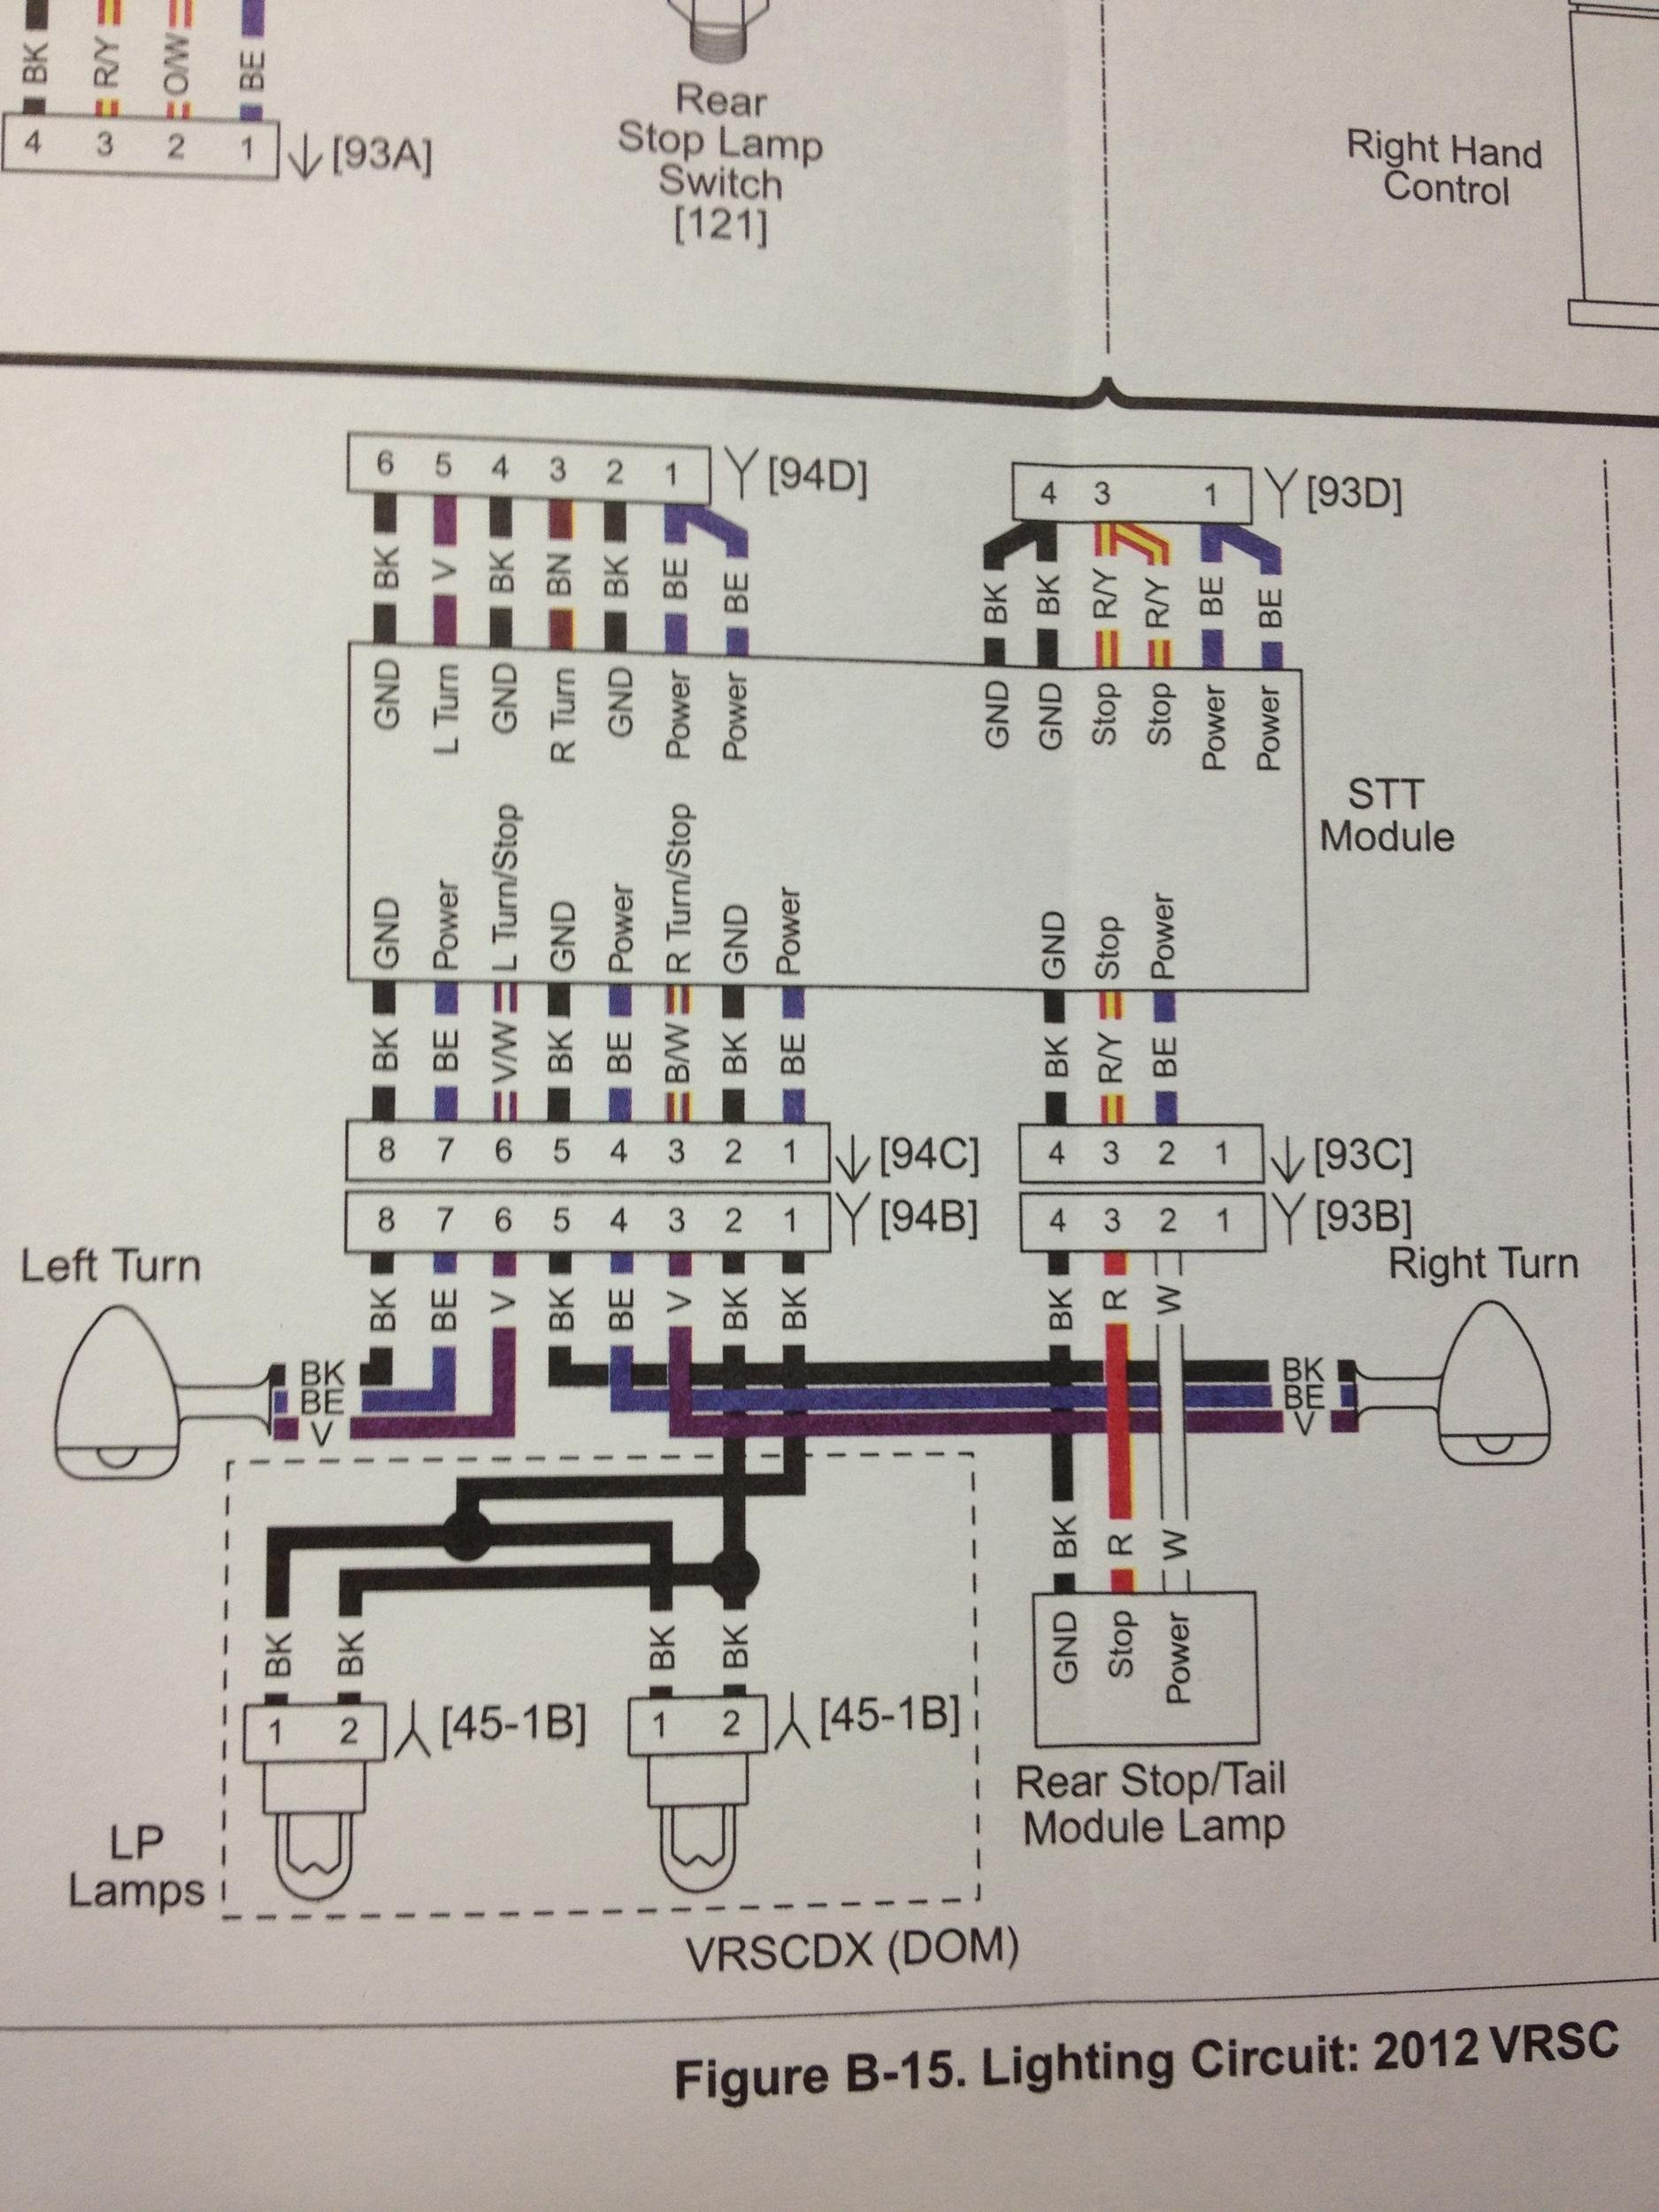 electrical diagram or map victory motorcycles motorcycle forums together with radio not working fuse victory motorcycles motorcycle forums as well victory battery wiring diagram 4 moreover 2013 victory high ball motorcycle additionally tachometer install on 07 vegas 8 ball victory motorcycles. on 2013 victory vegas 8 ball wire diagram